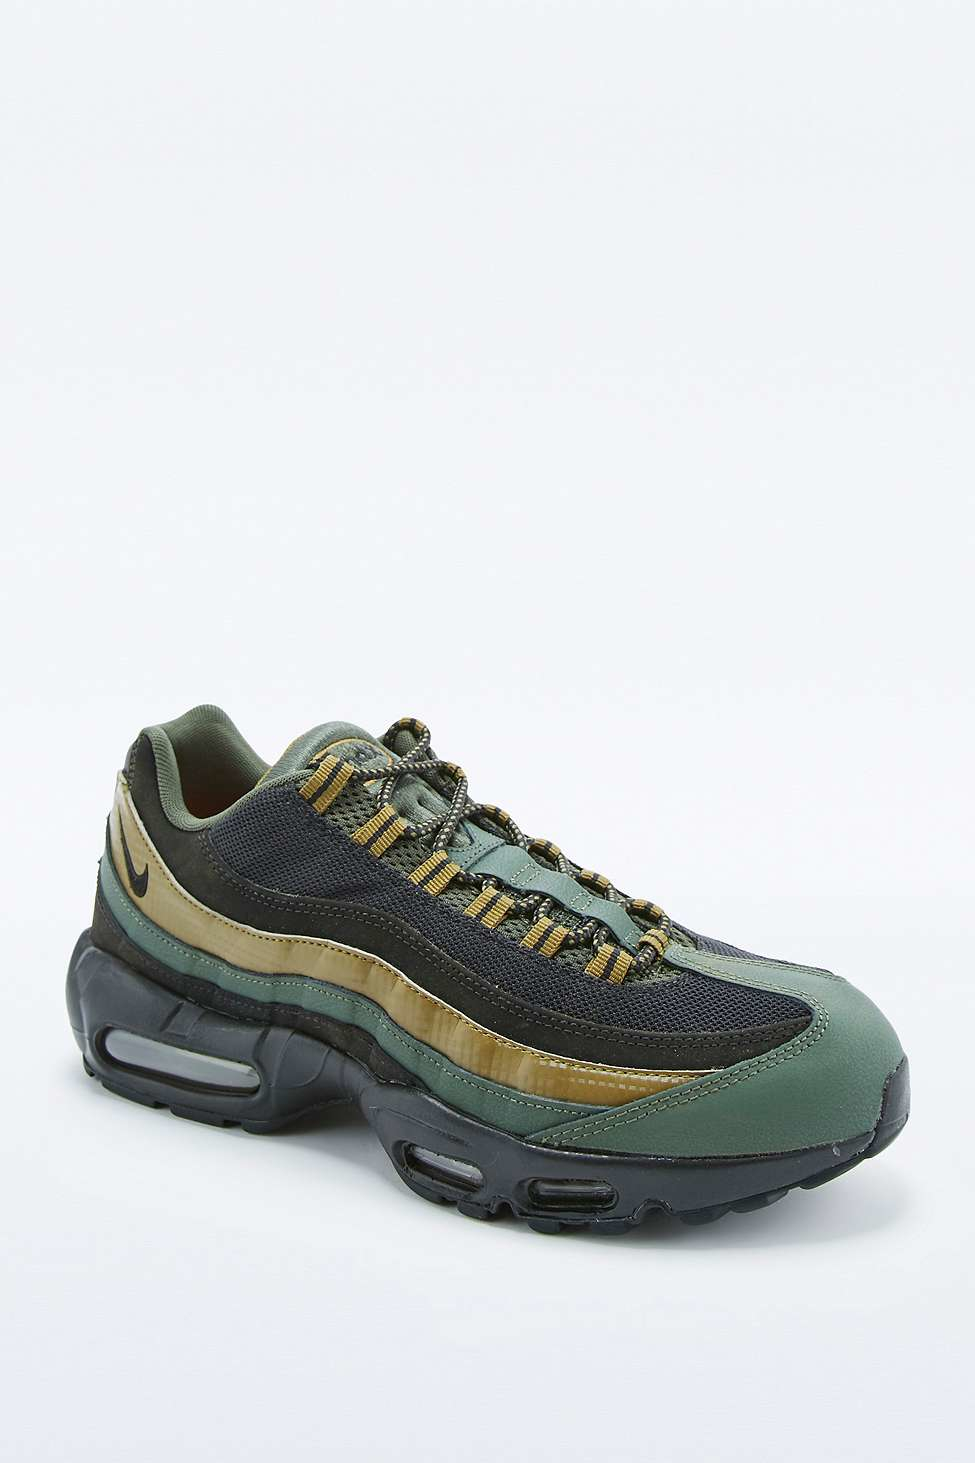 fcbb09e9dc Nike Air Max 95 Essential Khaki And Black Trainers in Natural for ...